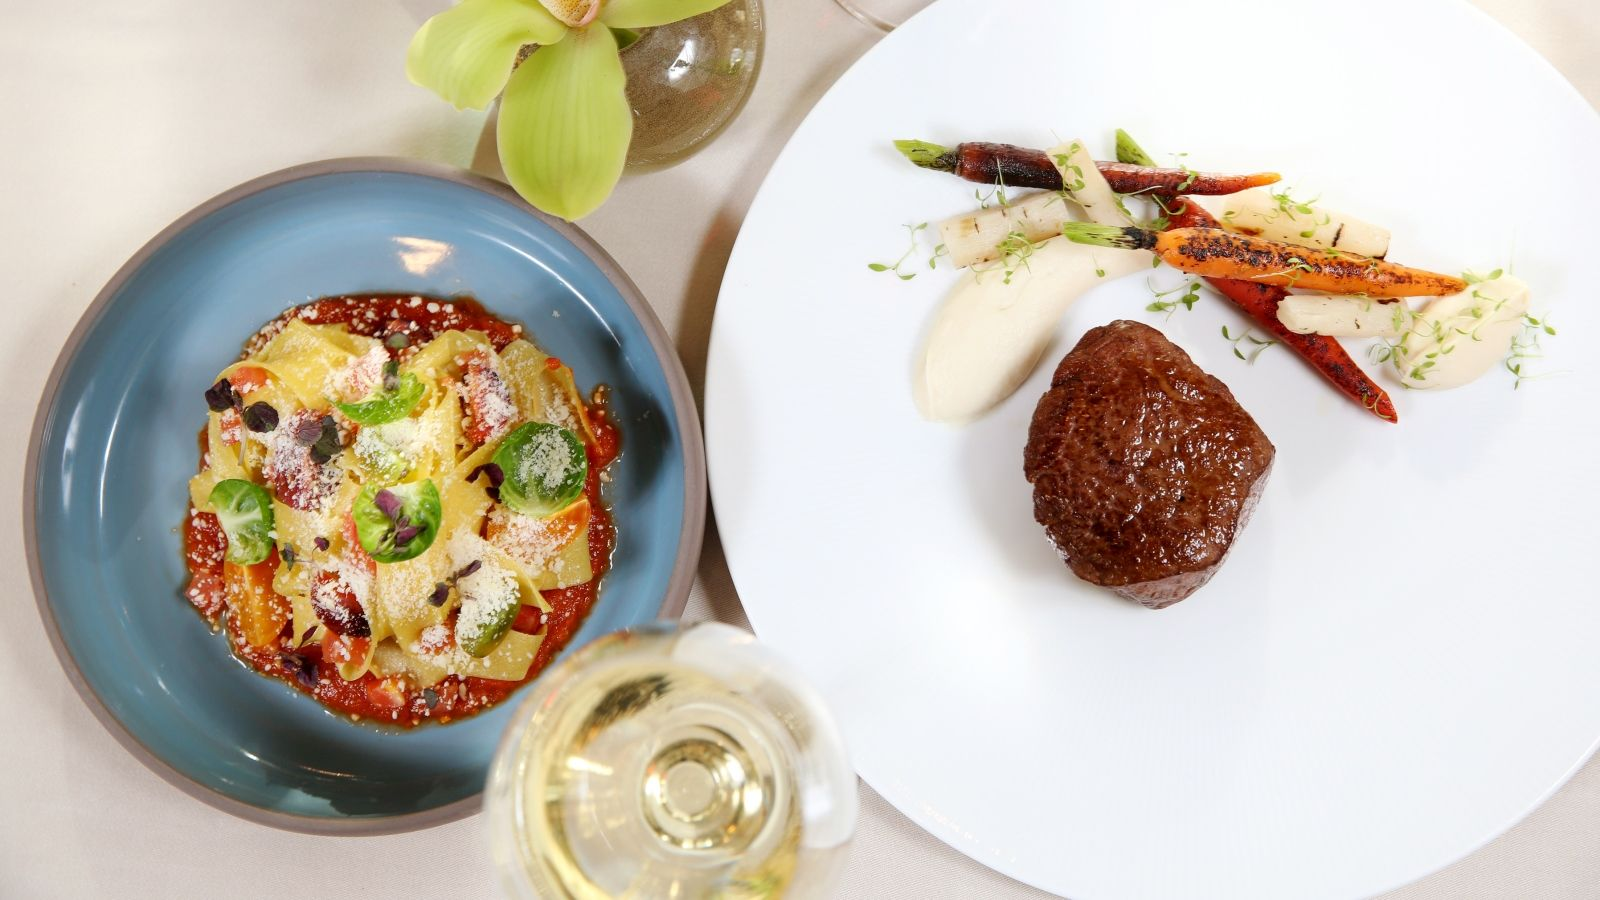 Fall menu items at Grill Restaurant at The St. Regis San Francisco